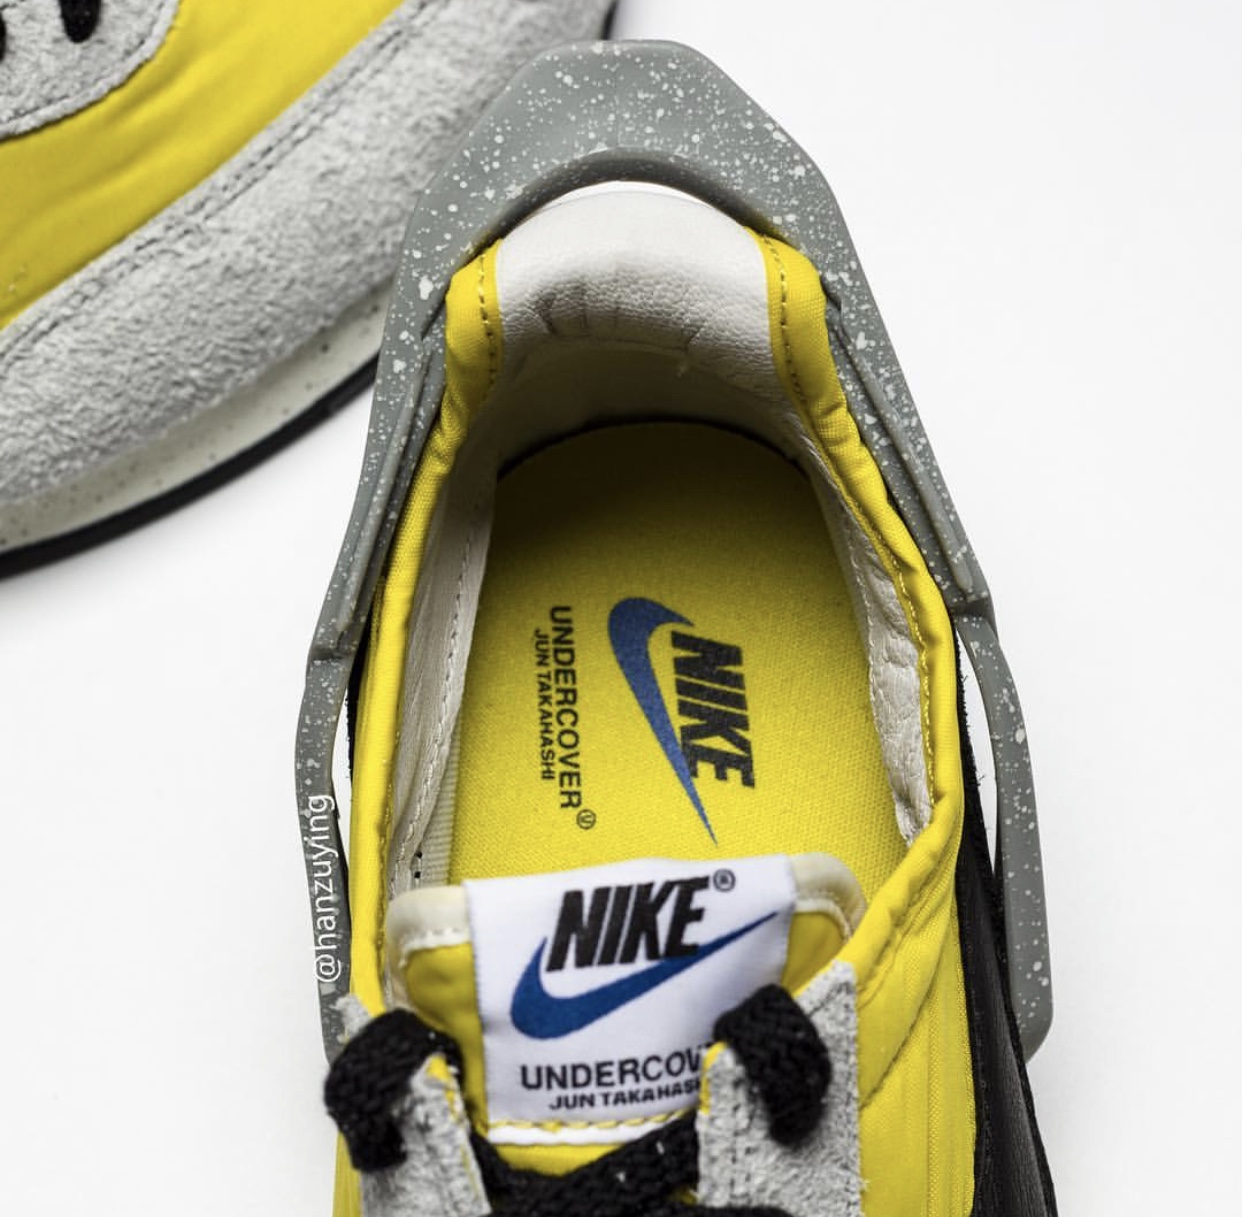 Undercover Nike Daybreak Yellow Undercover Nike Daybreak Black White BV4594-001 Release Date Release Date